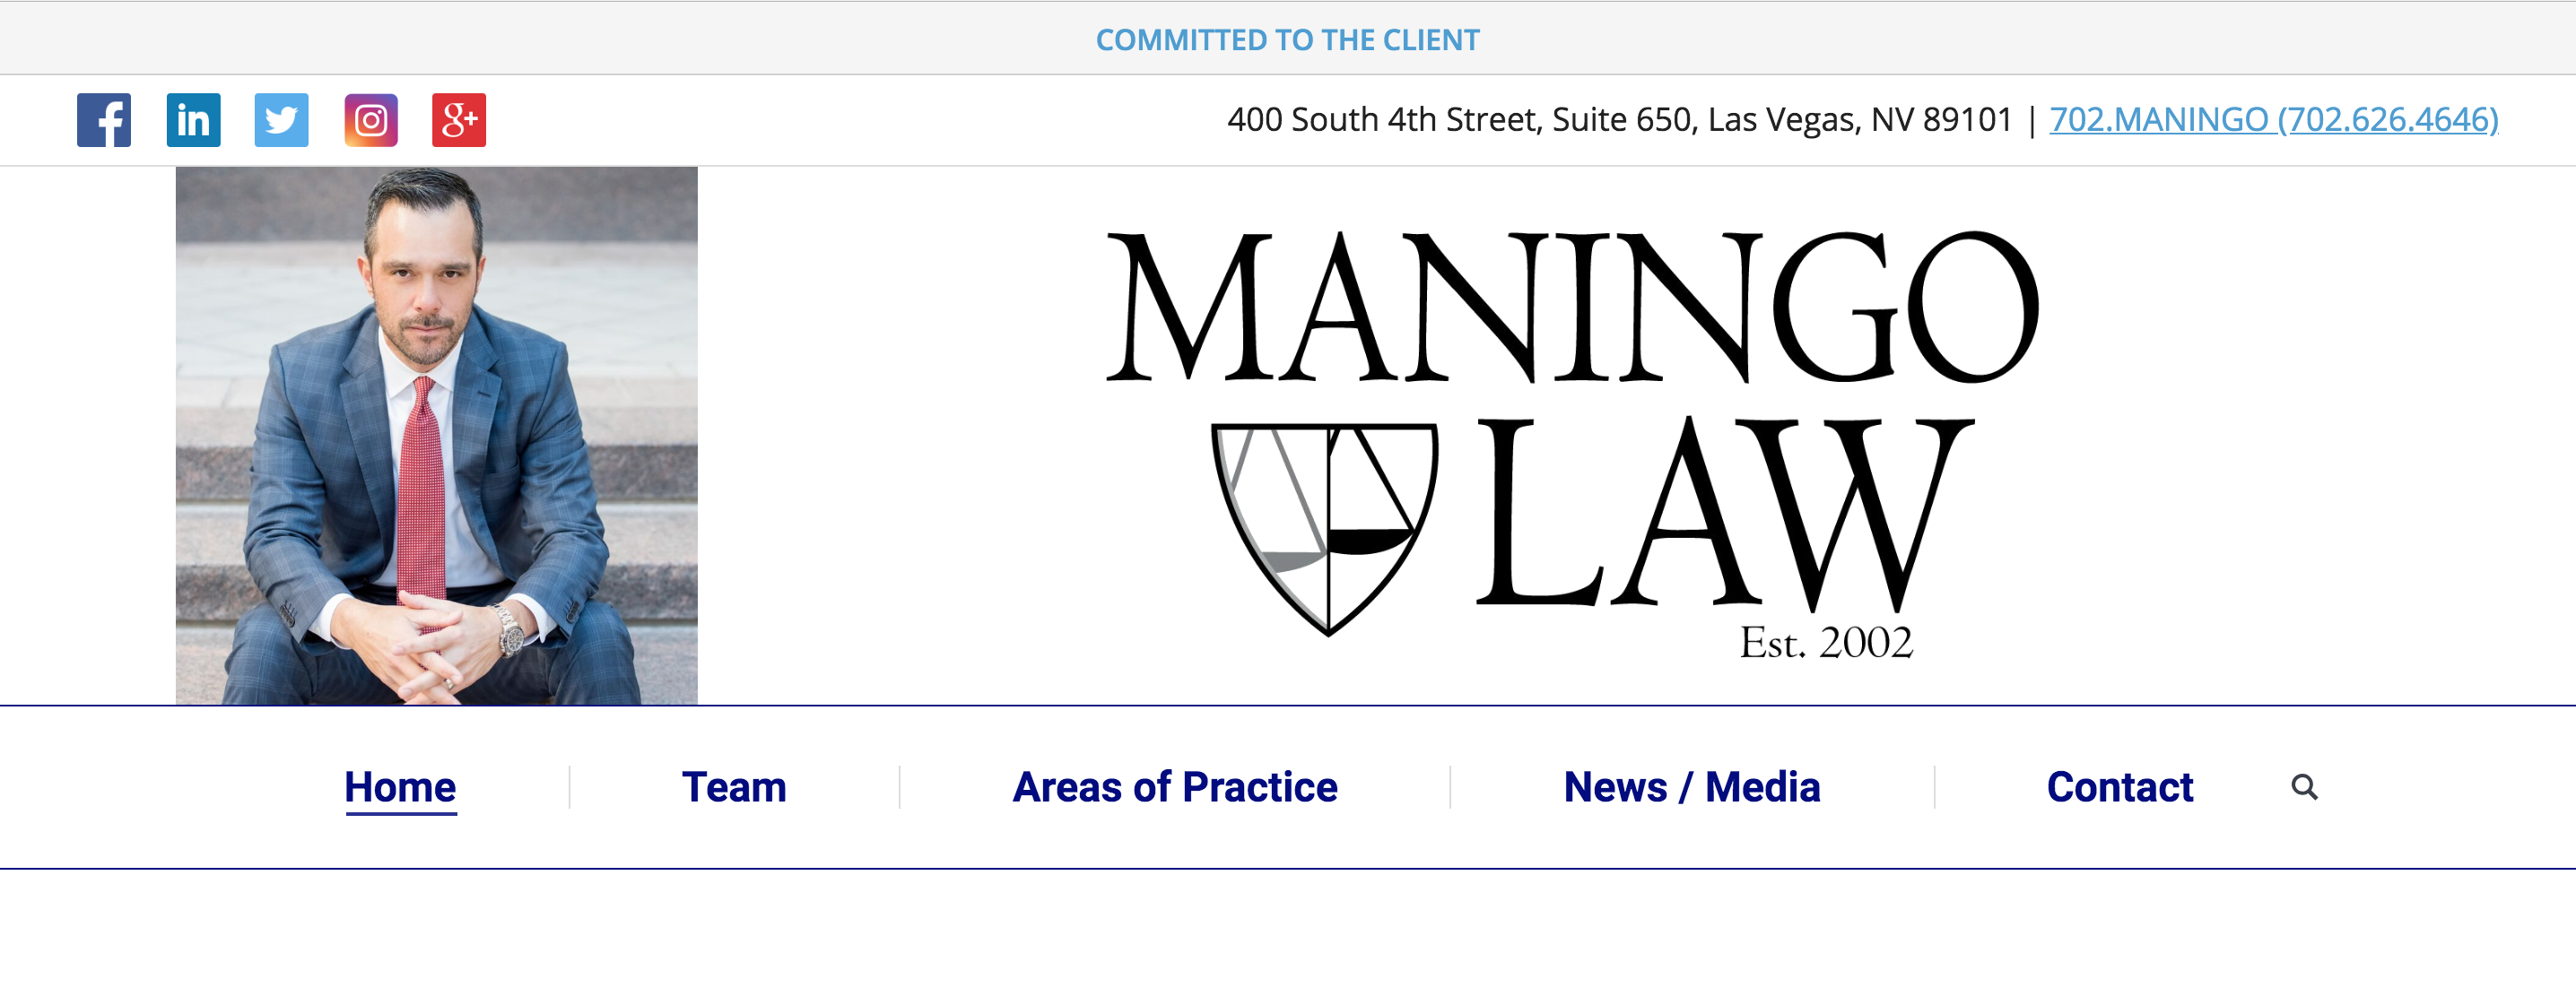 Maningo Law Website Home Page